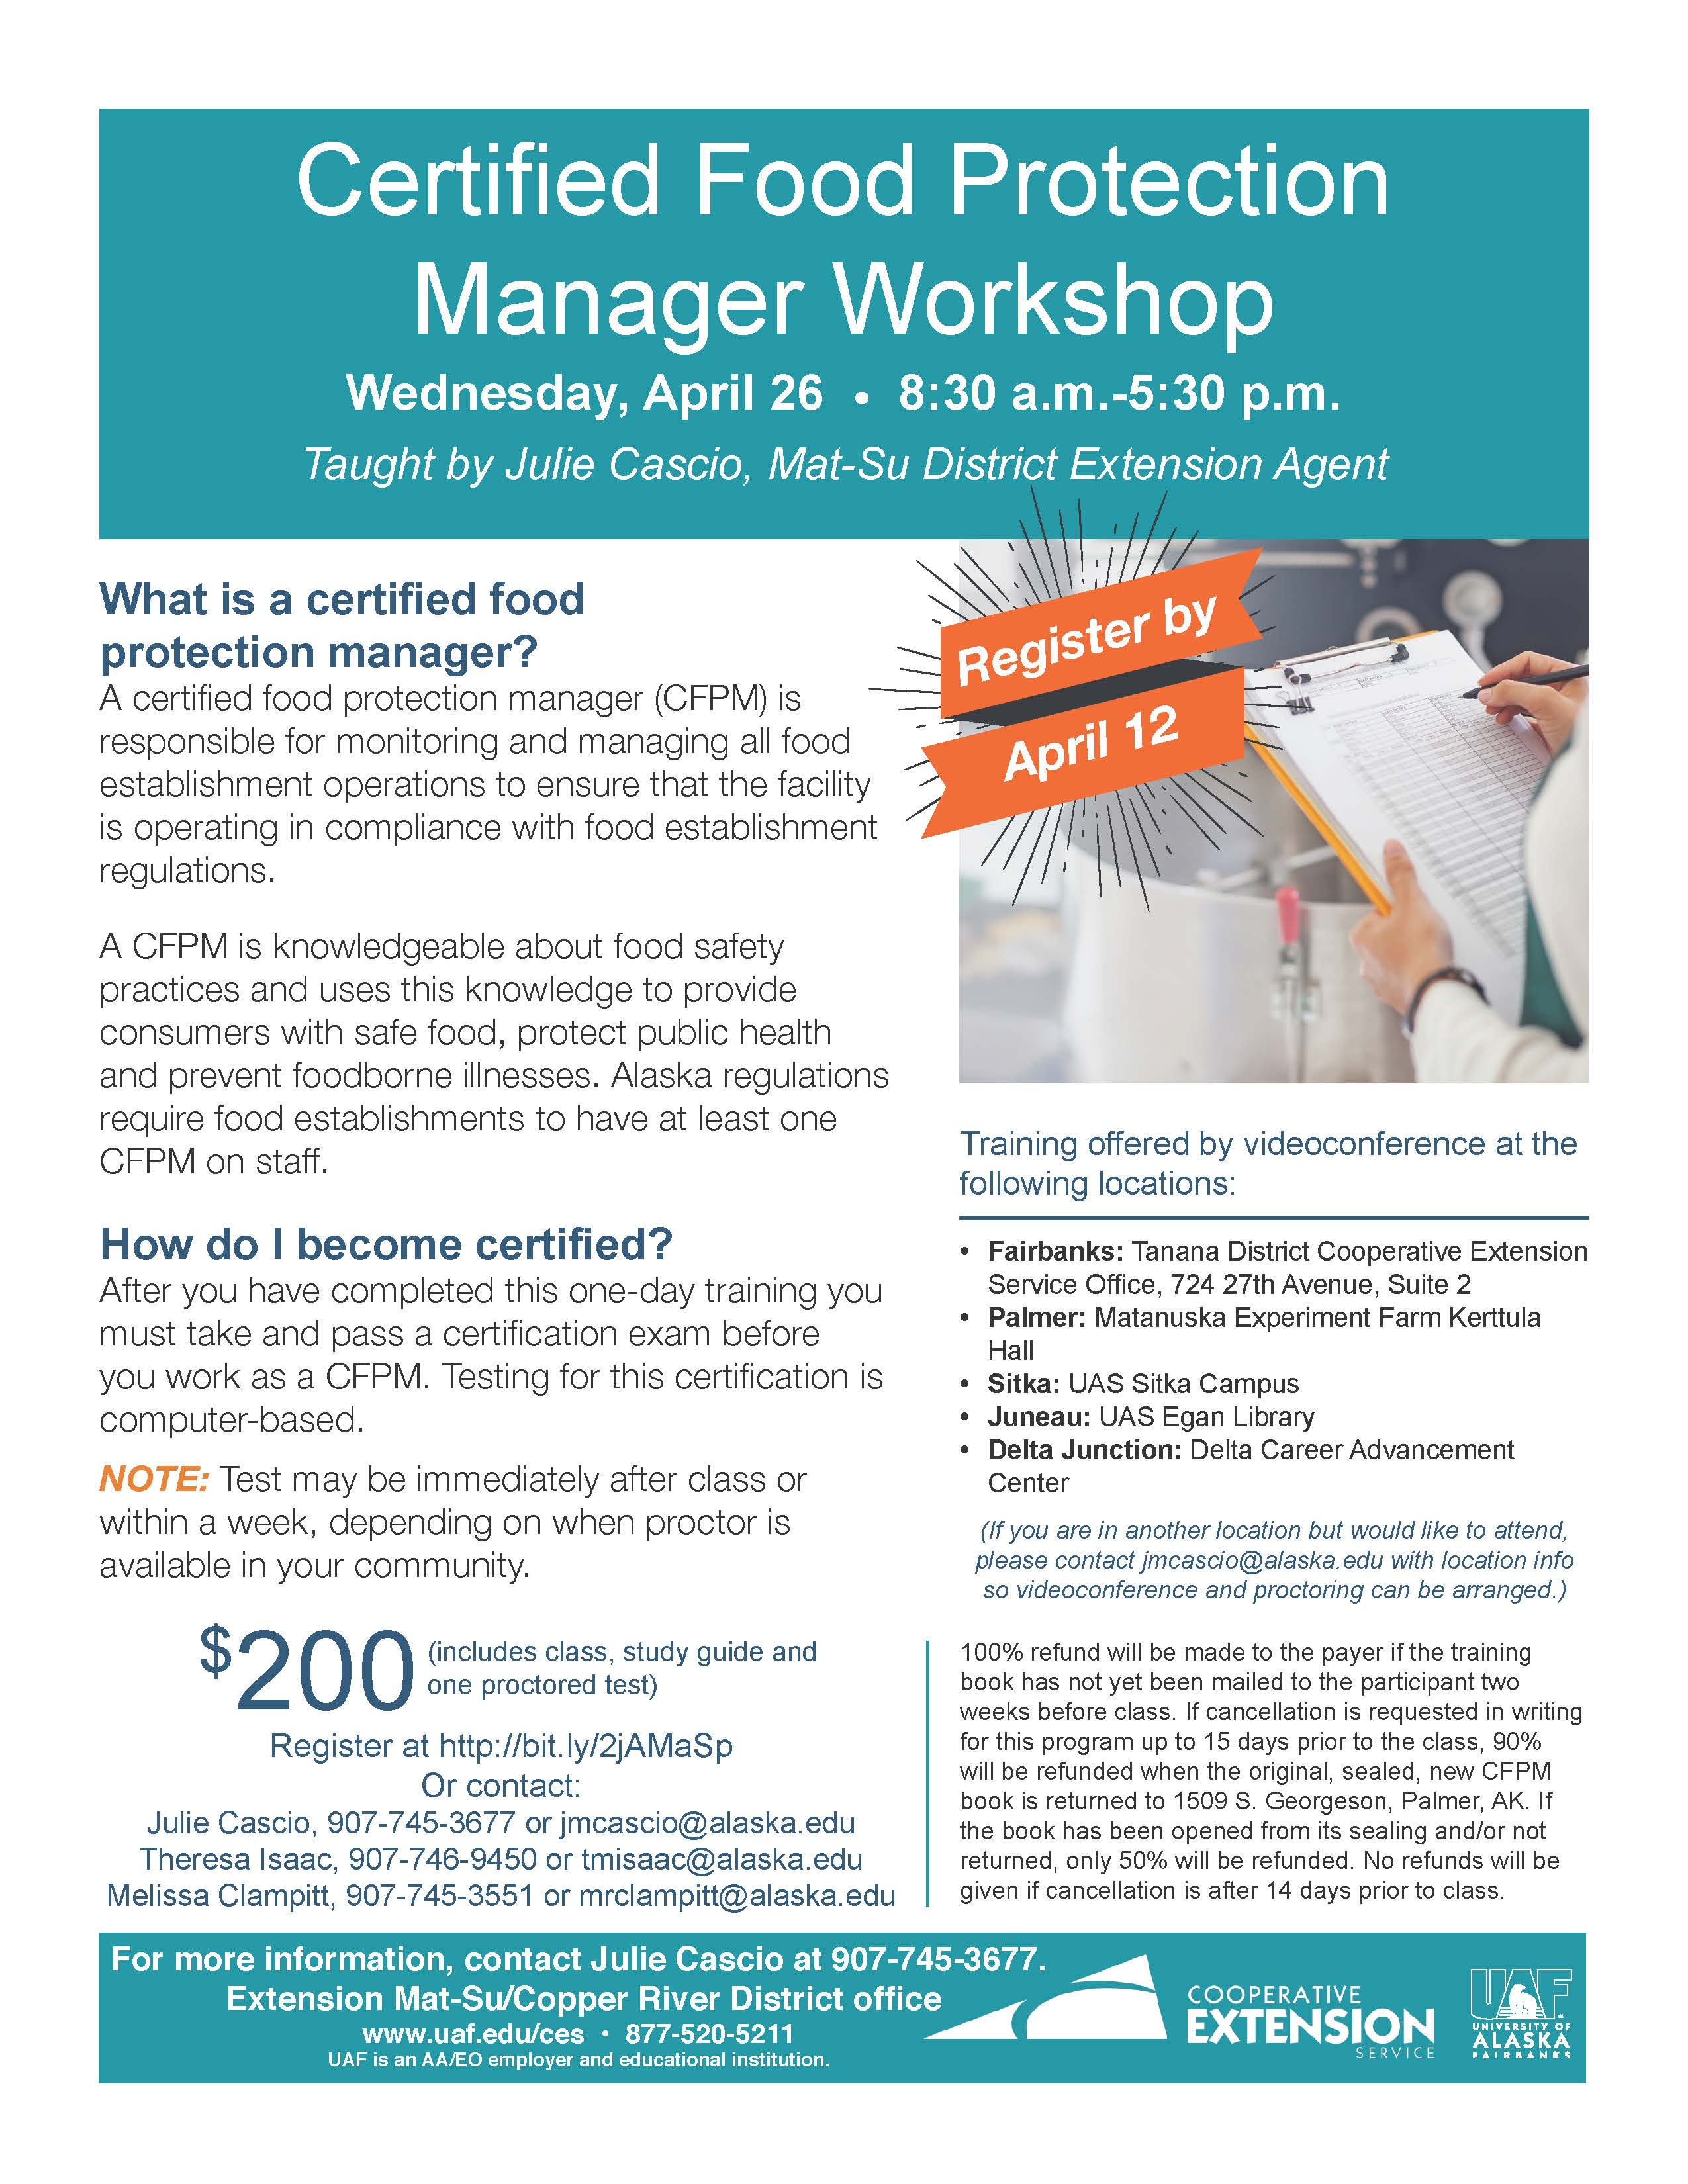 Uaf cooperative extension service offers certified food protection uaf cooperative extension service offers certified food protection manager class by videoconference april 26 in sitka sitka local foods network xflitez Gallery